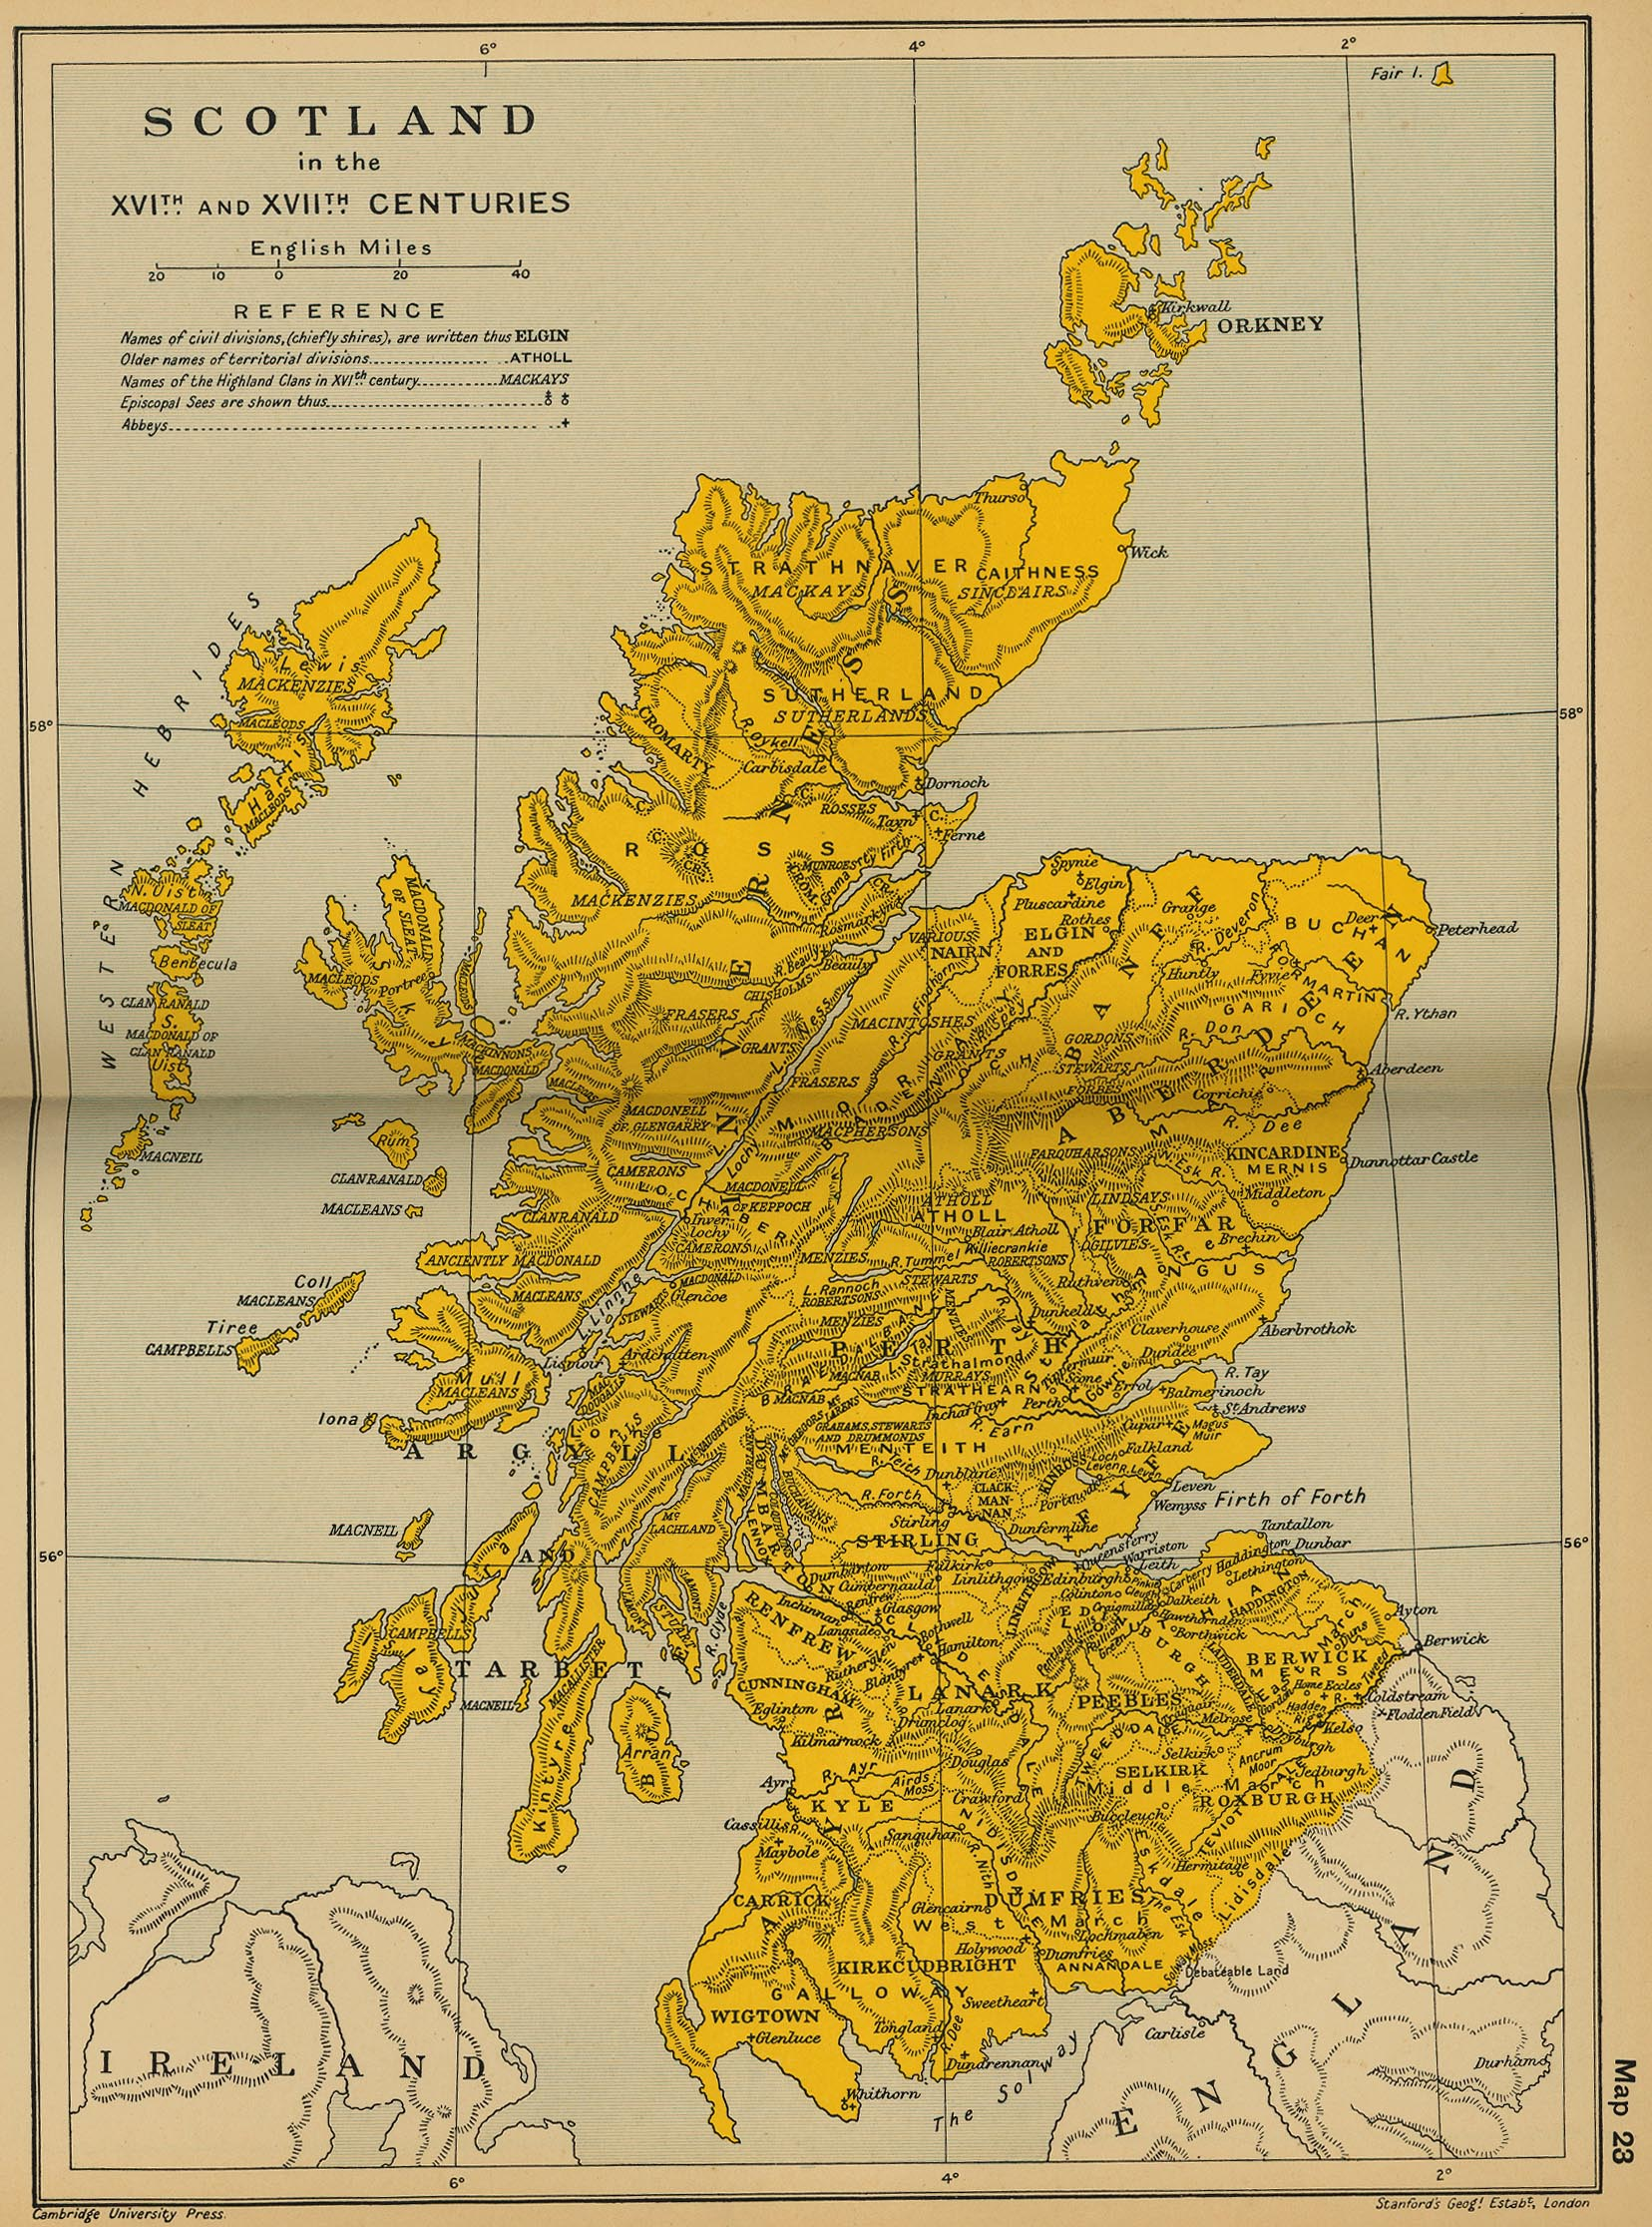 Map of Scotland 16th Century